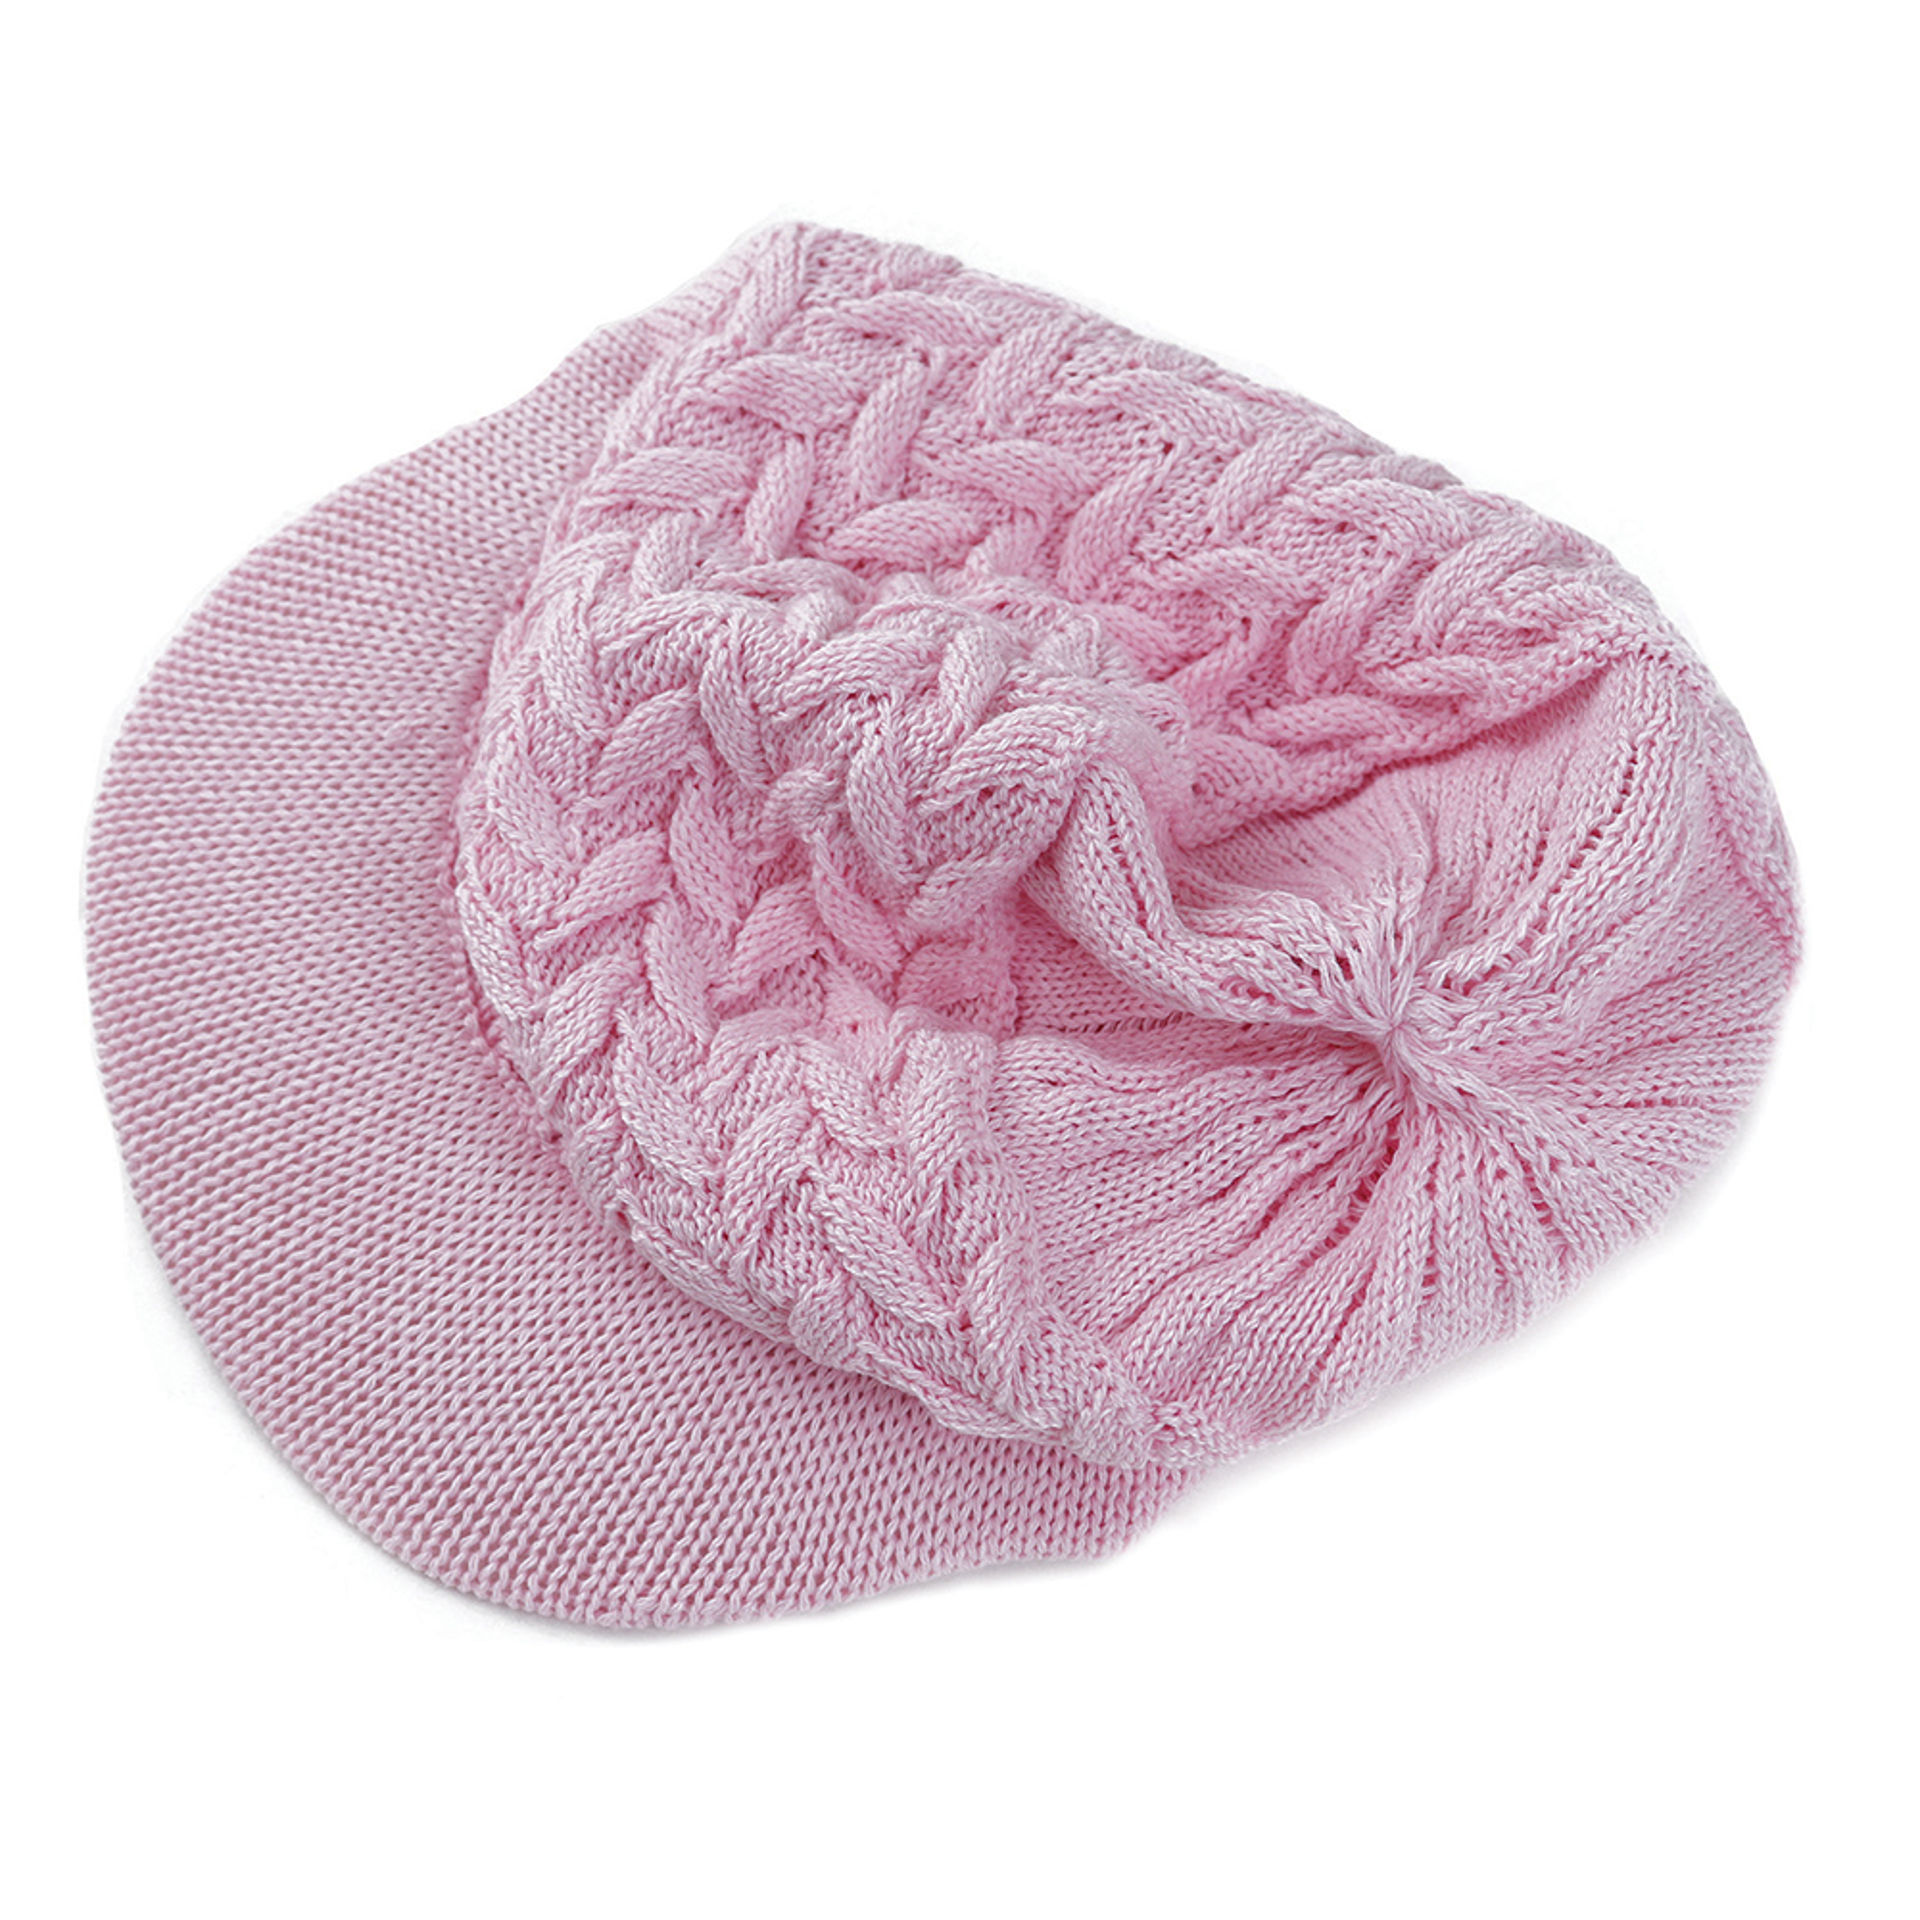 Picture of Knit Visor Cap - Pink